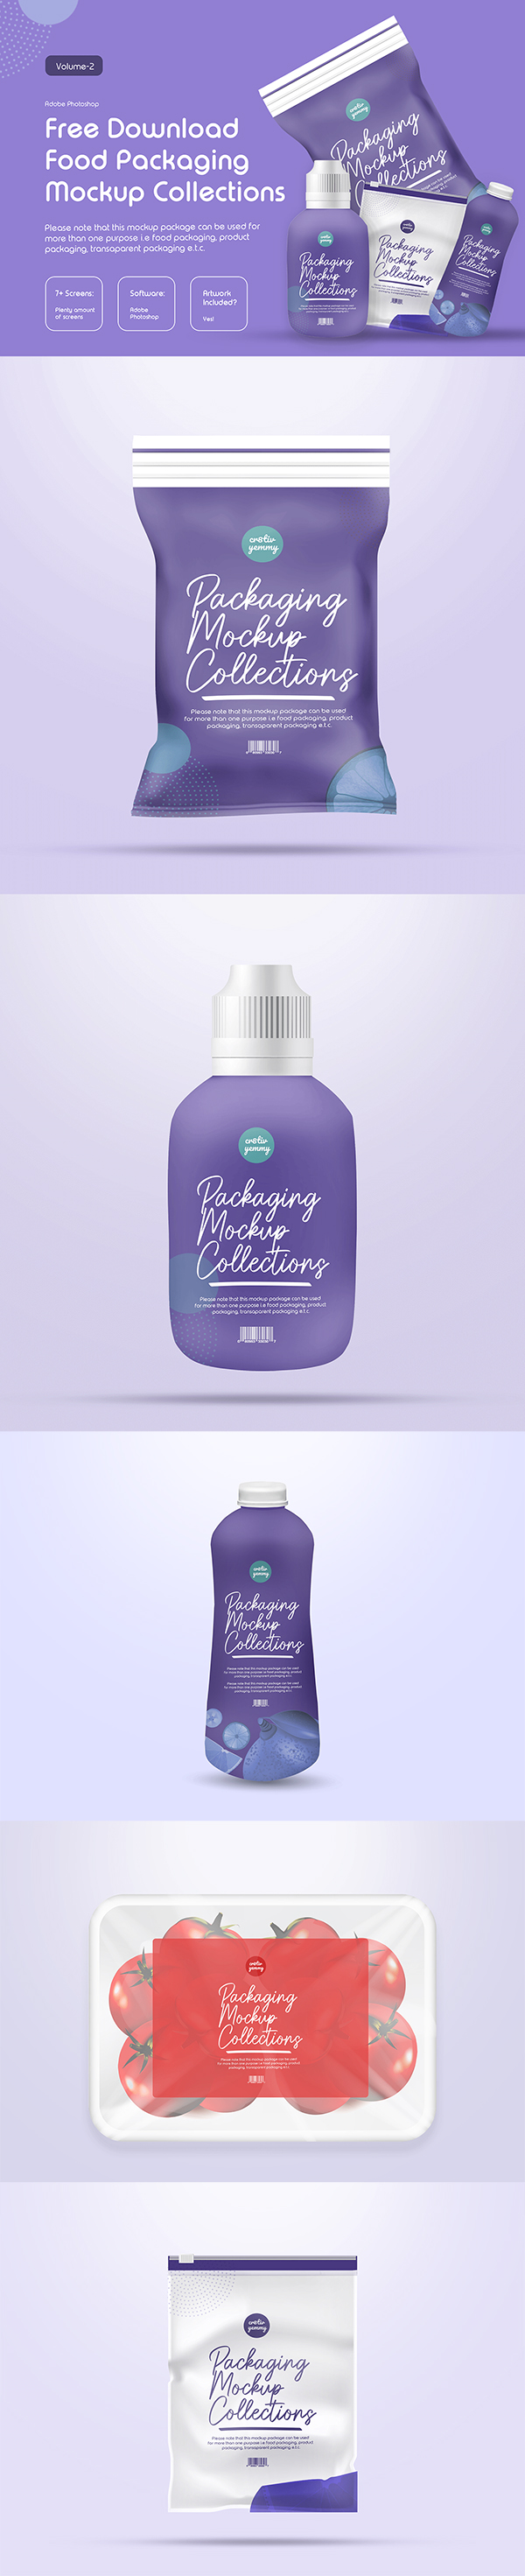 Free Packaging Mockup Templates